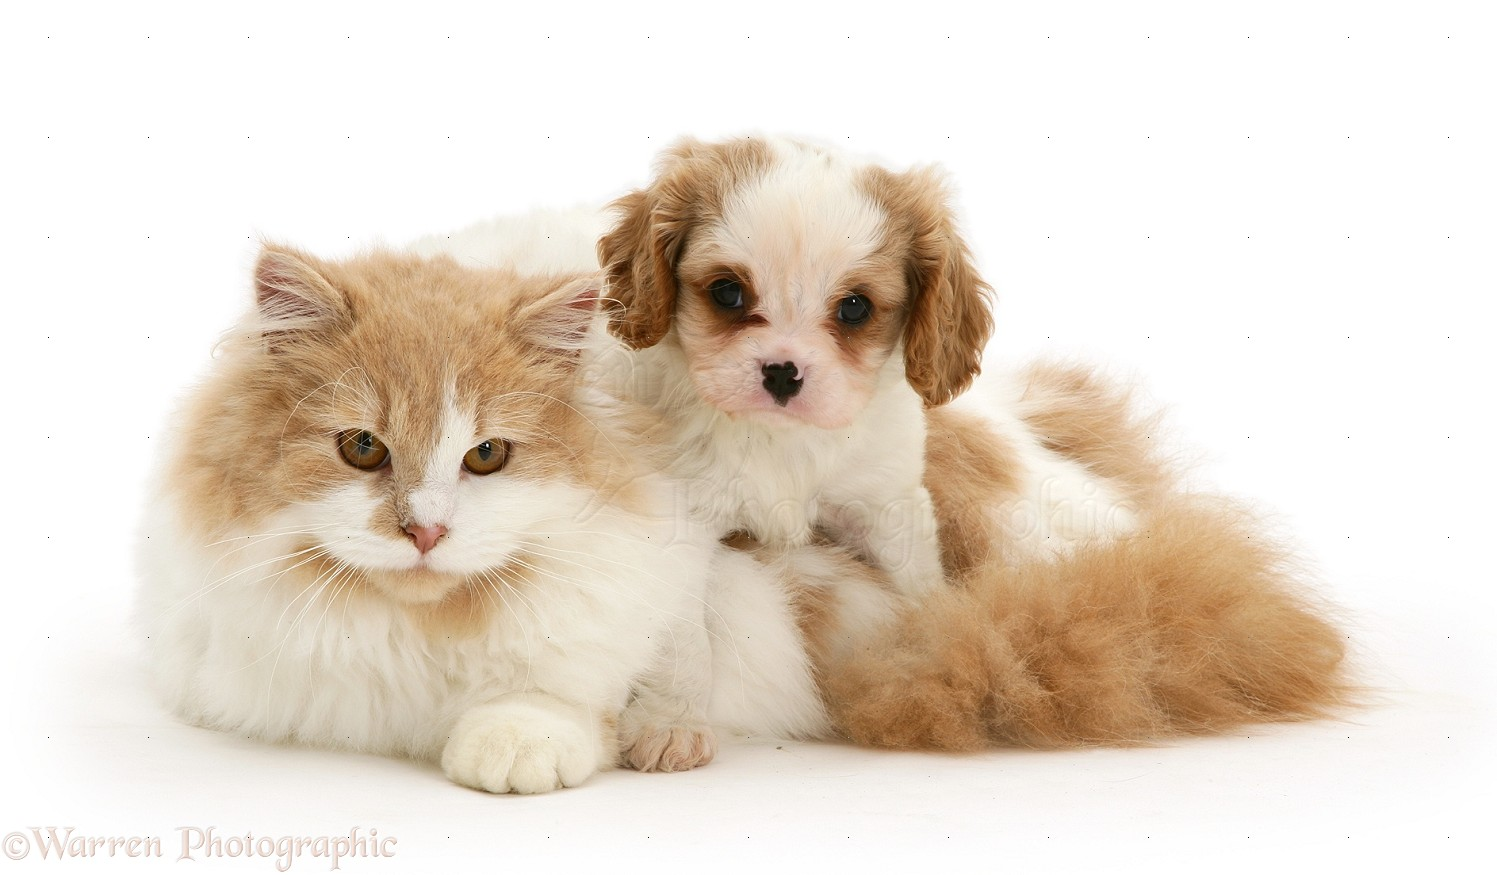 Cat Dog Together Cute Kittens And Puppies | 2017 - 2018 Best Cars ...